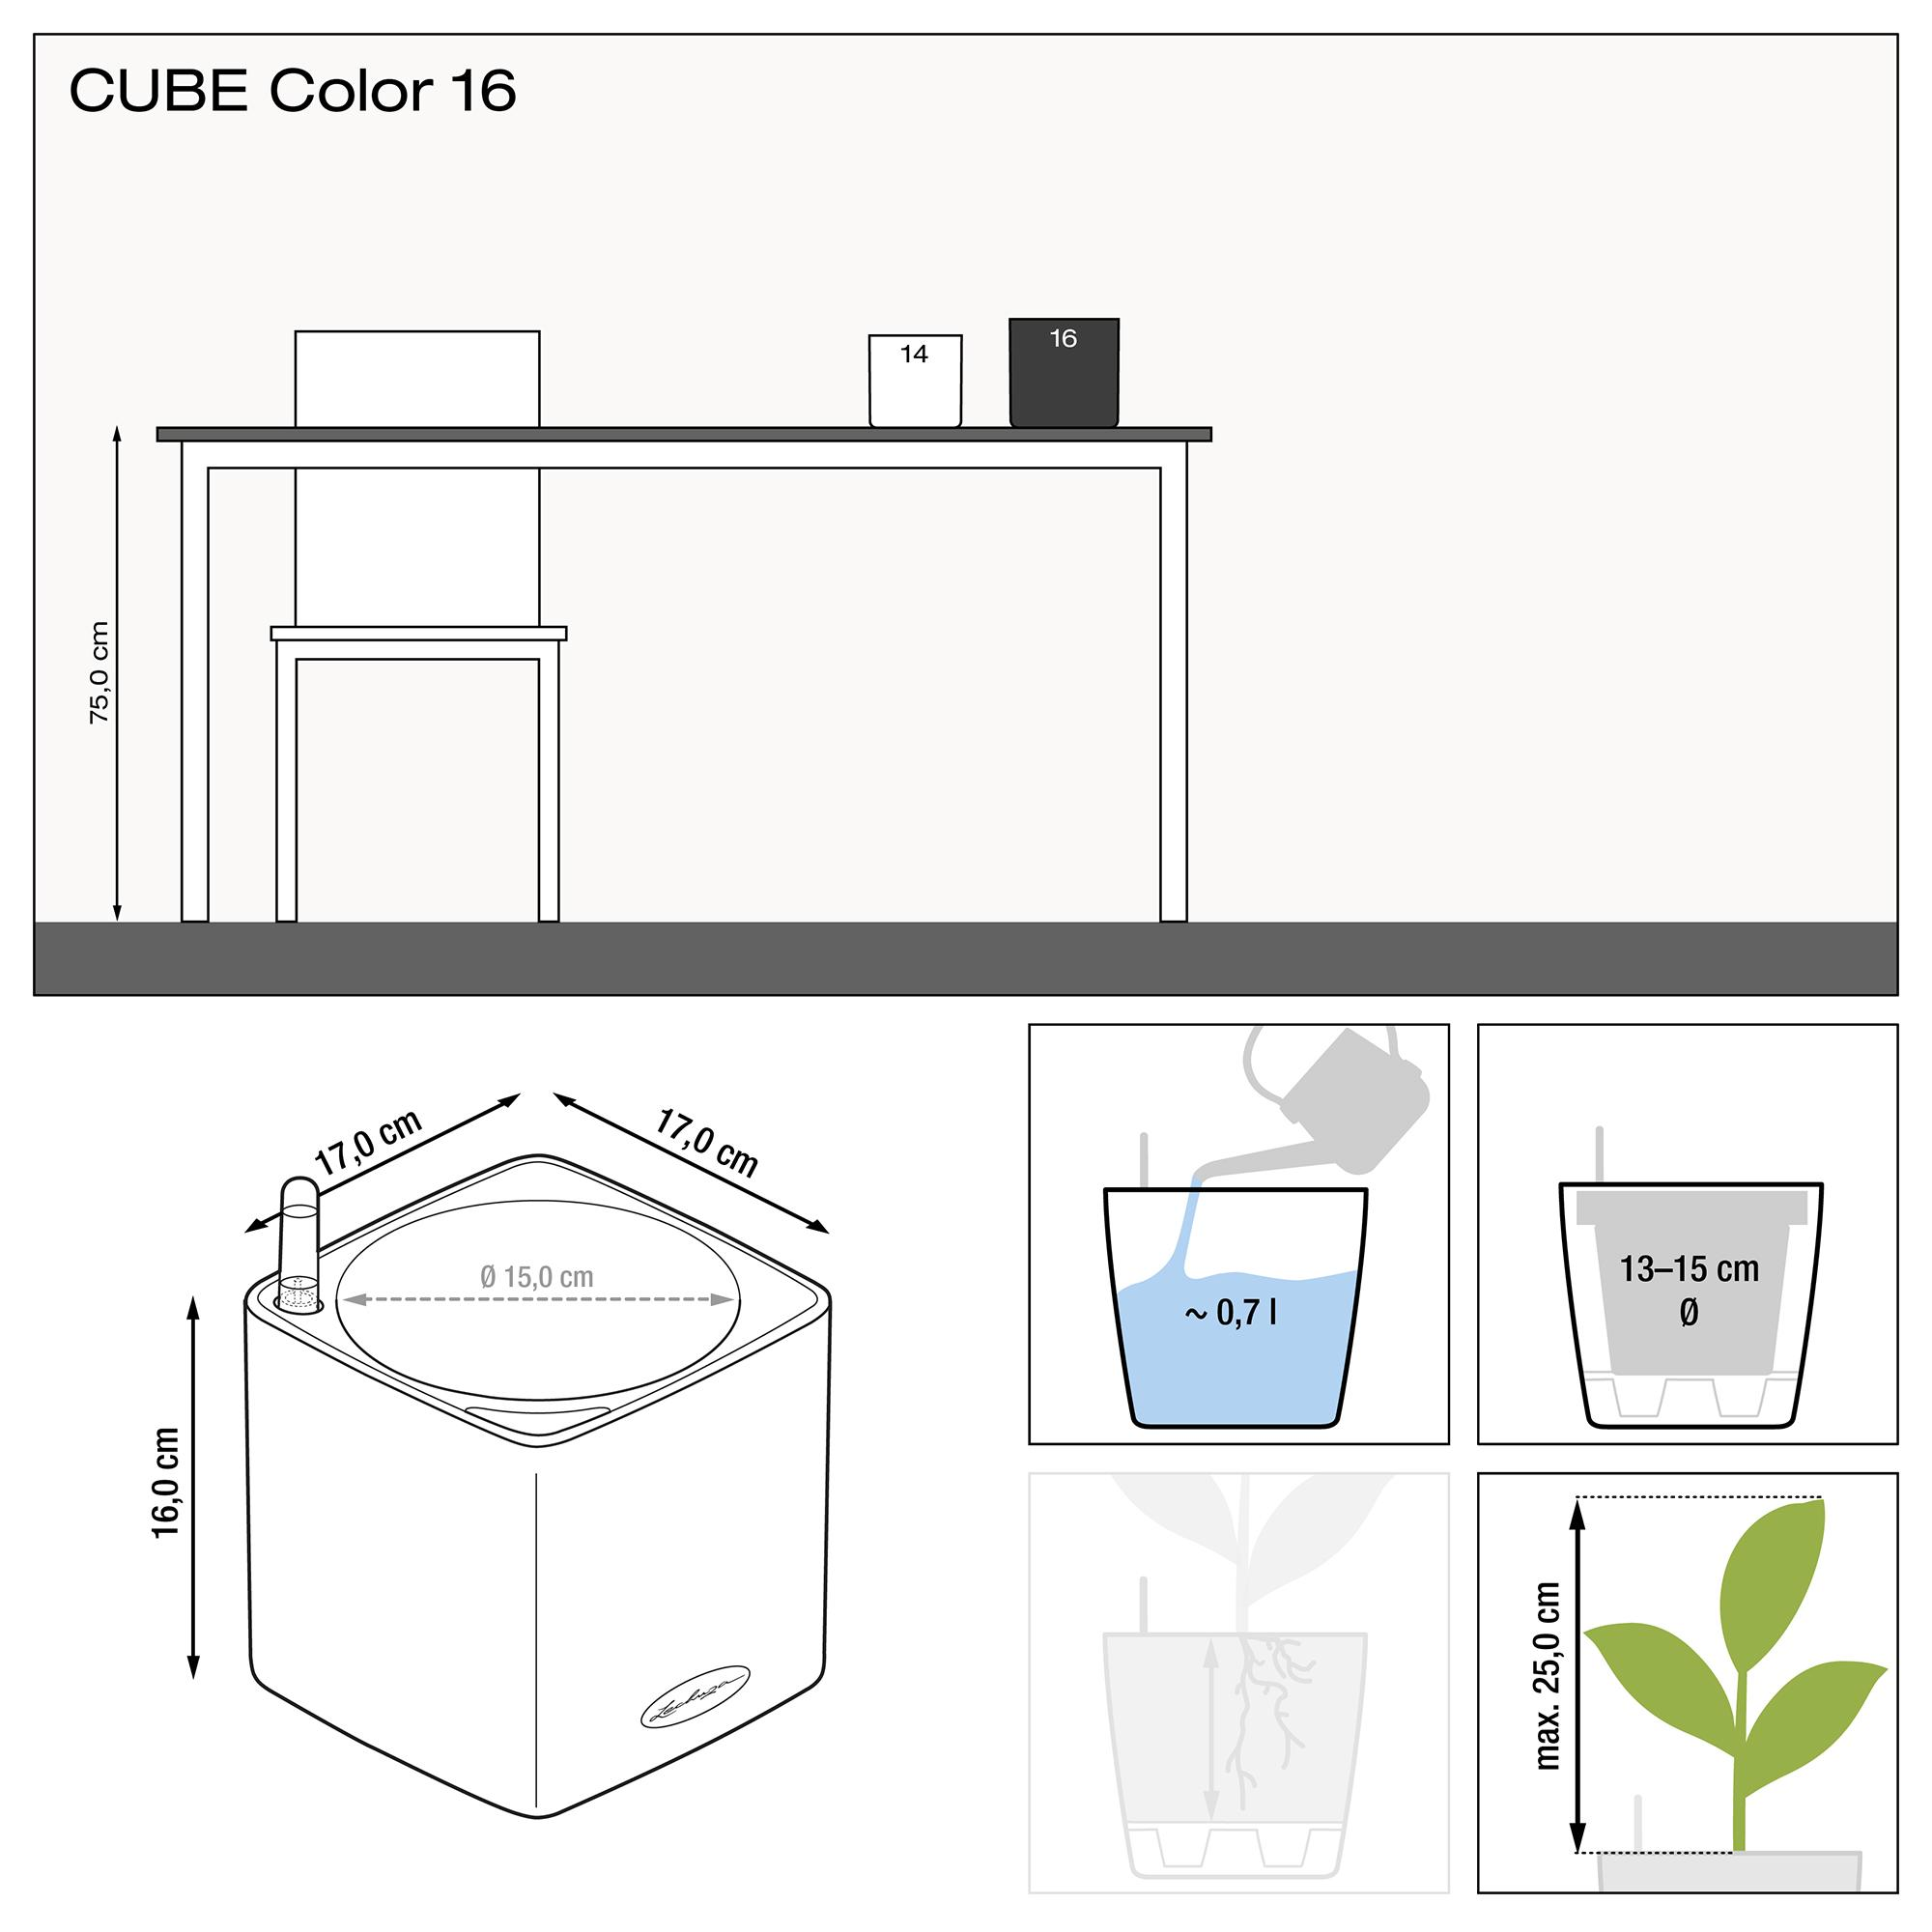 le_cube-color16_product_addi_nz